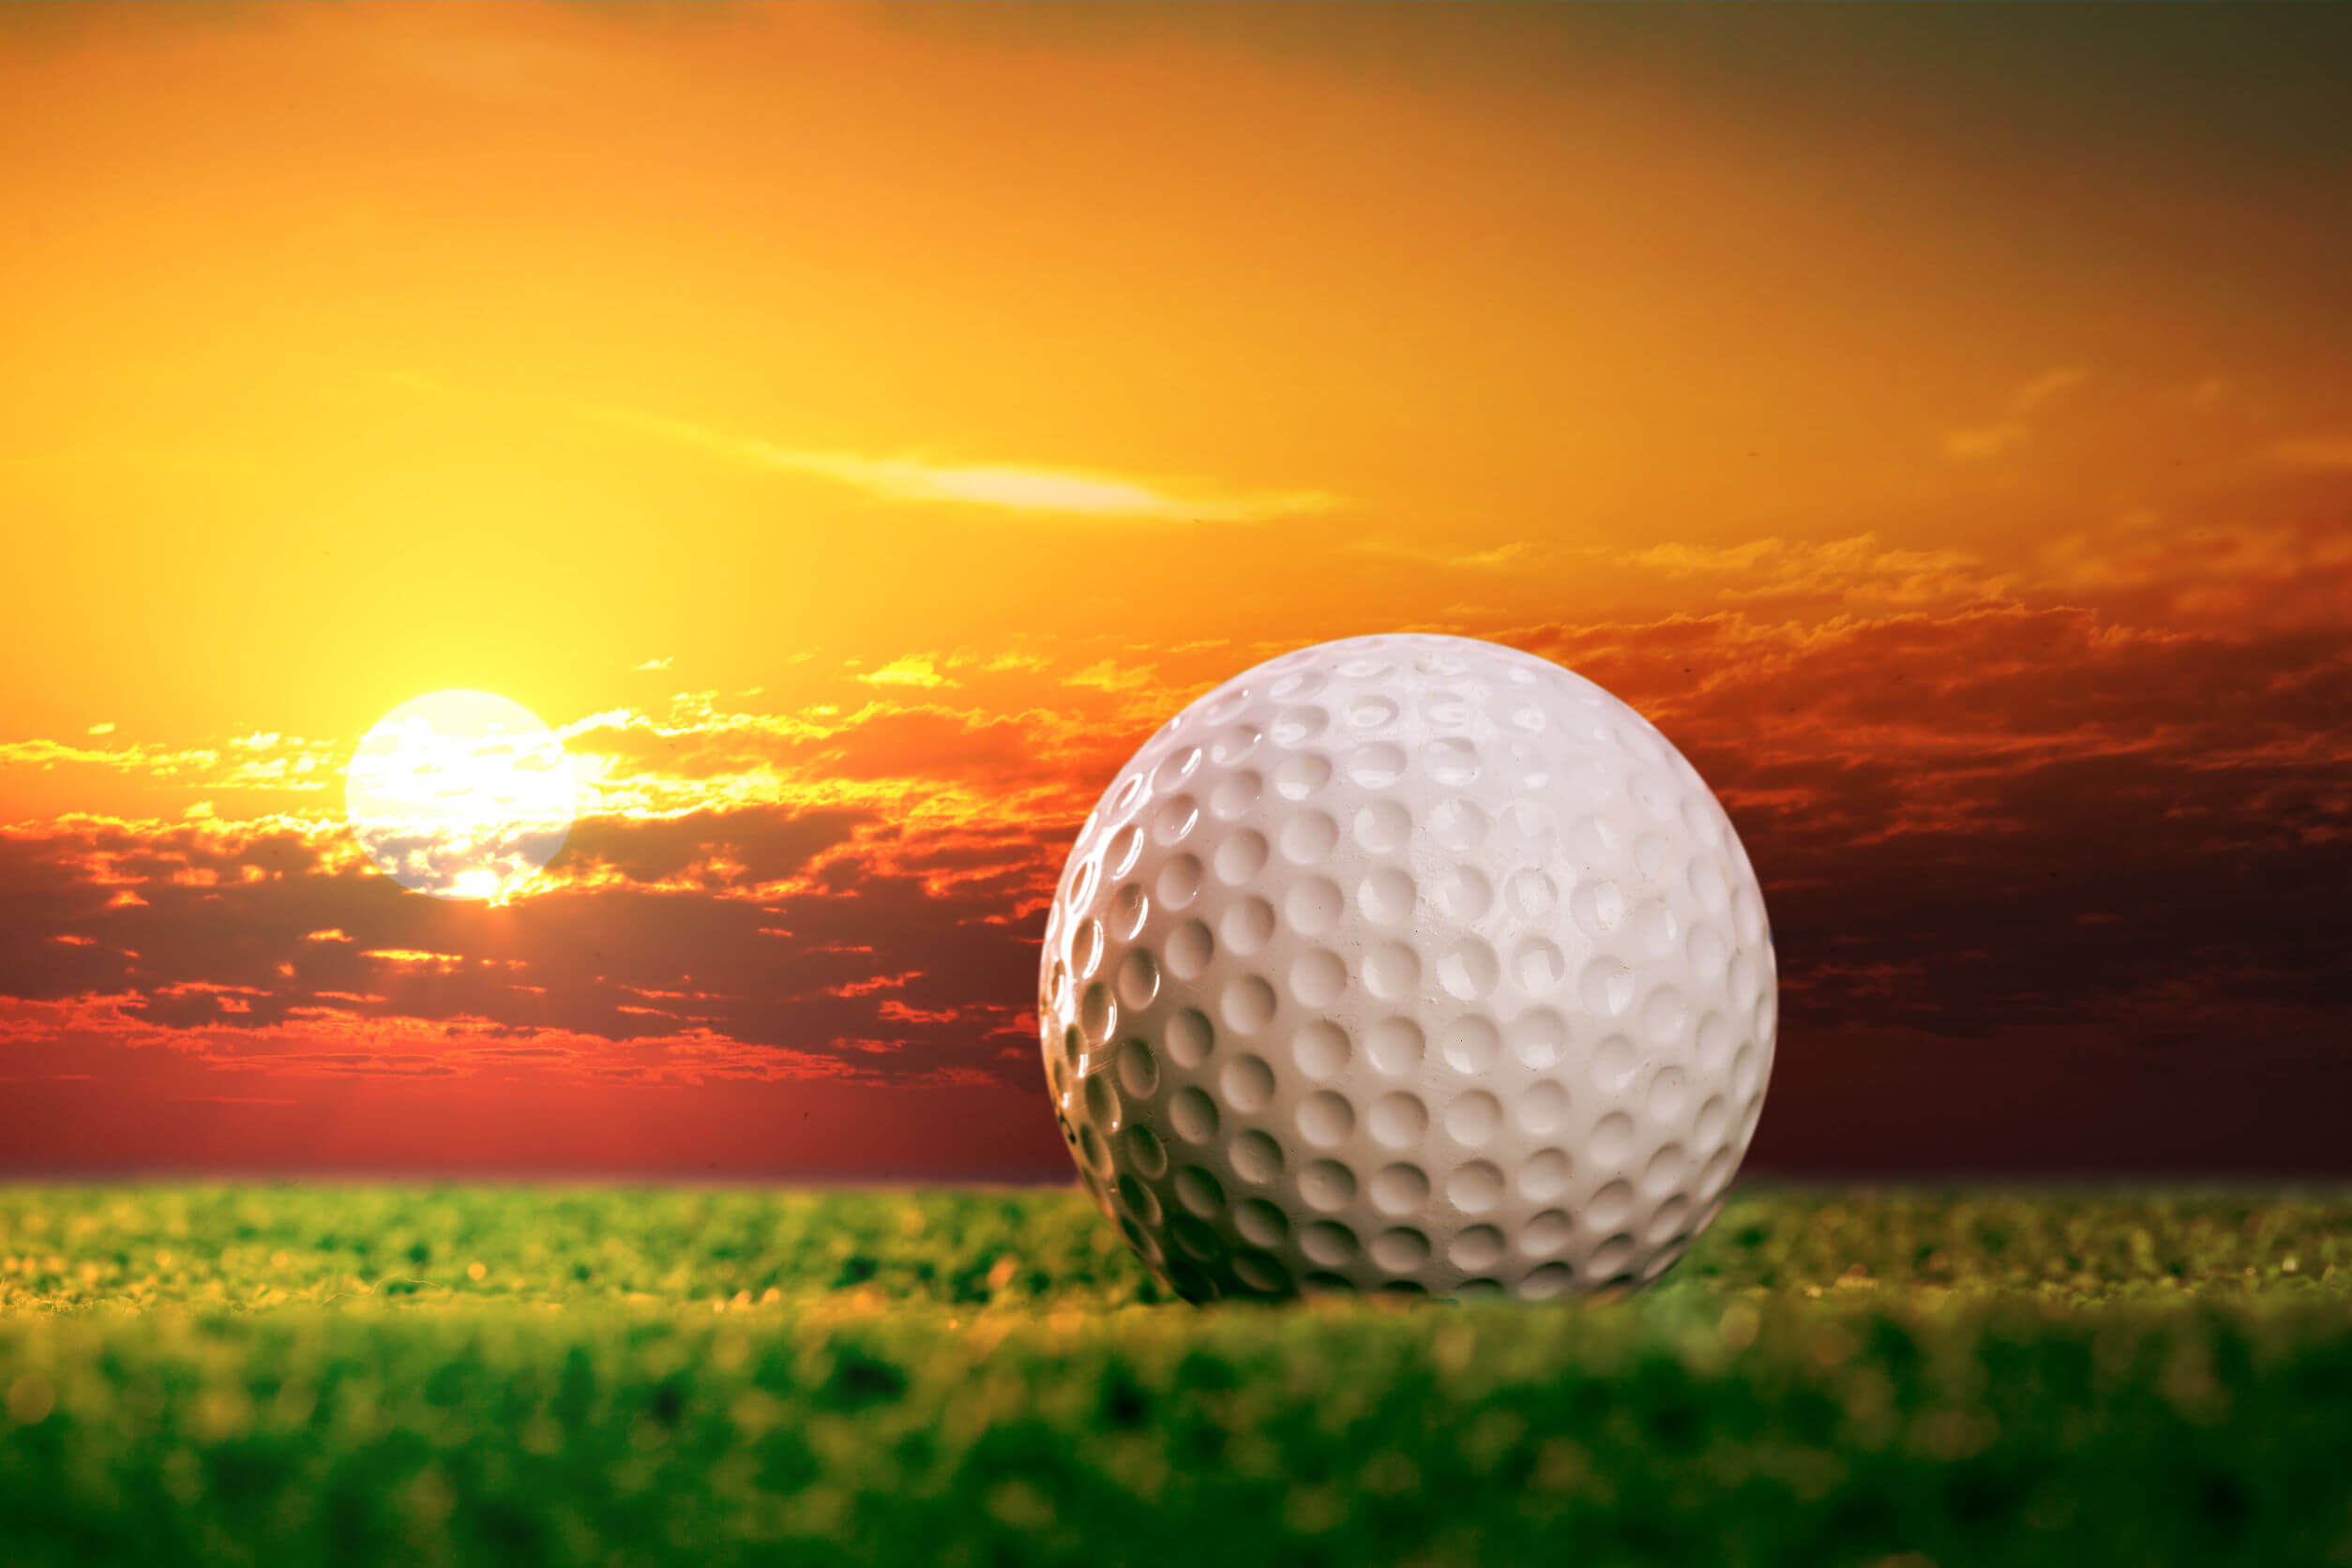 uk golf blog:7 top tips for playing golf in the heat